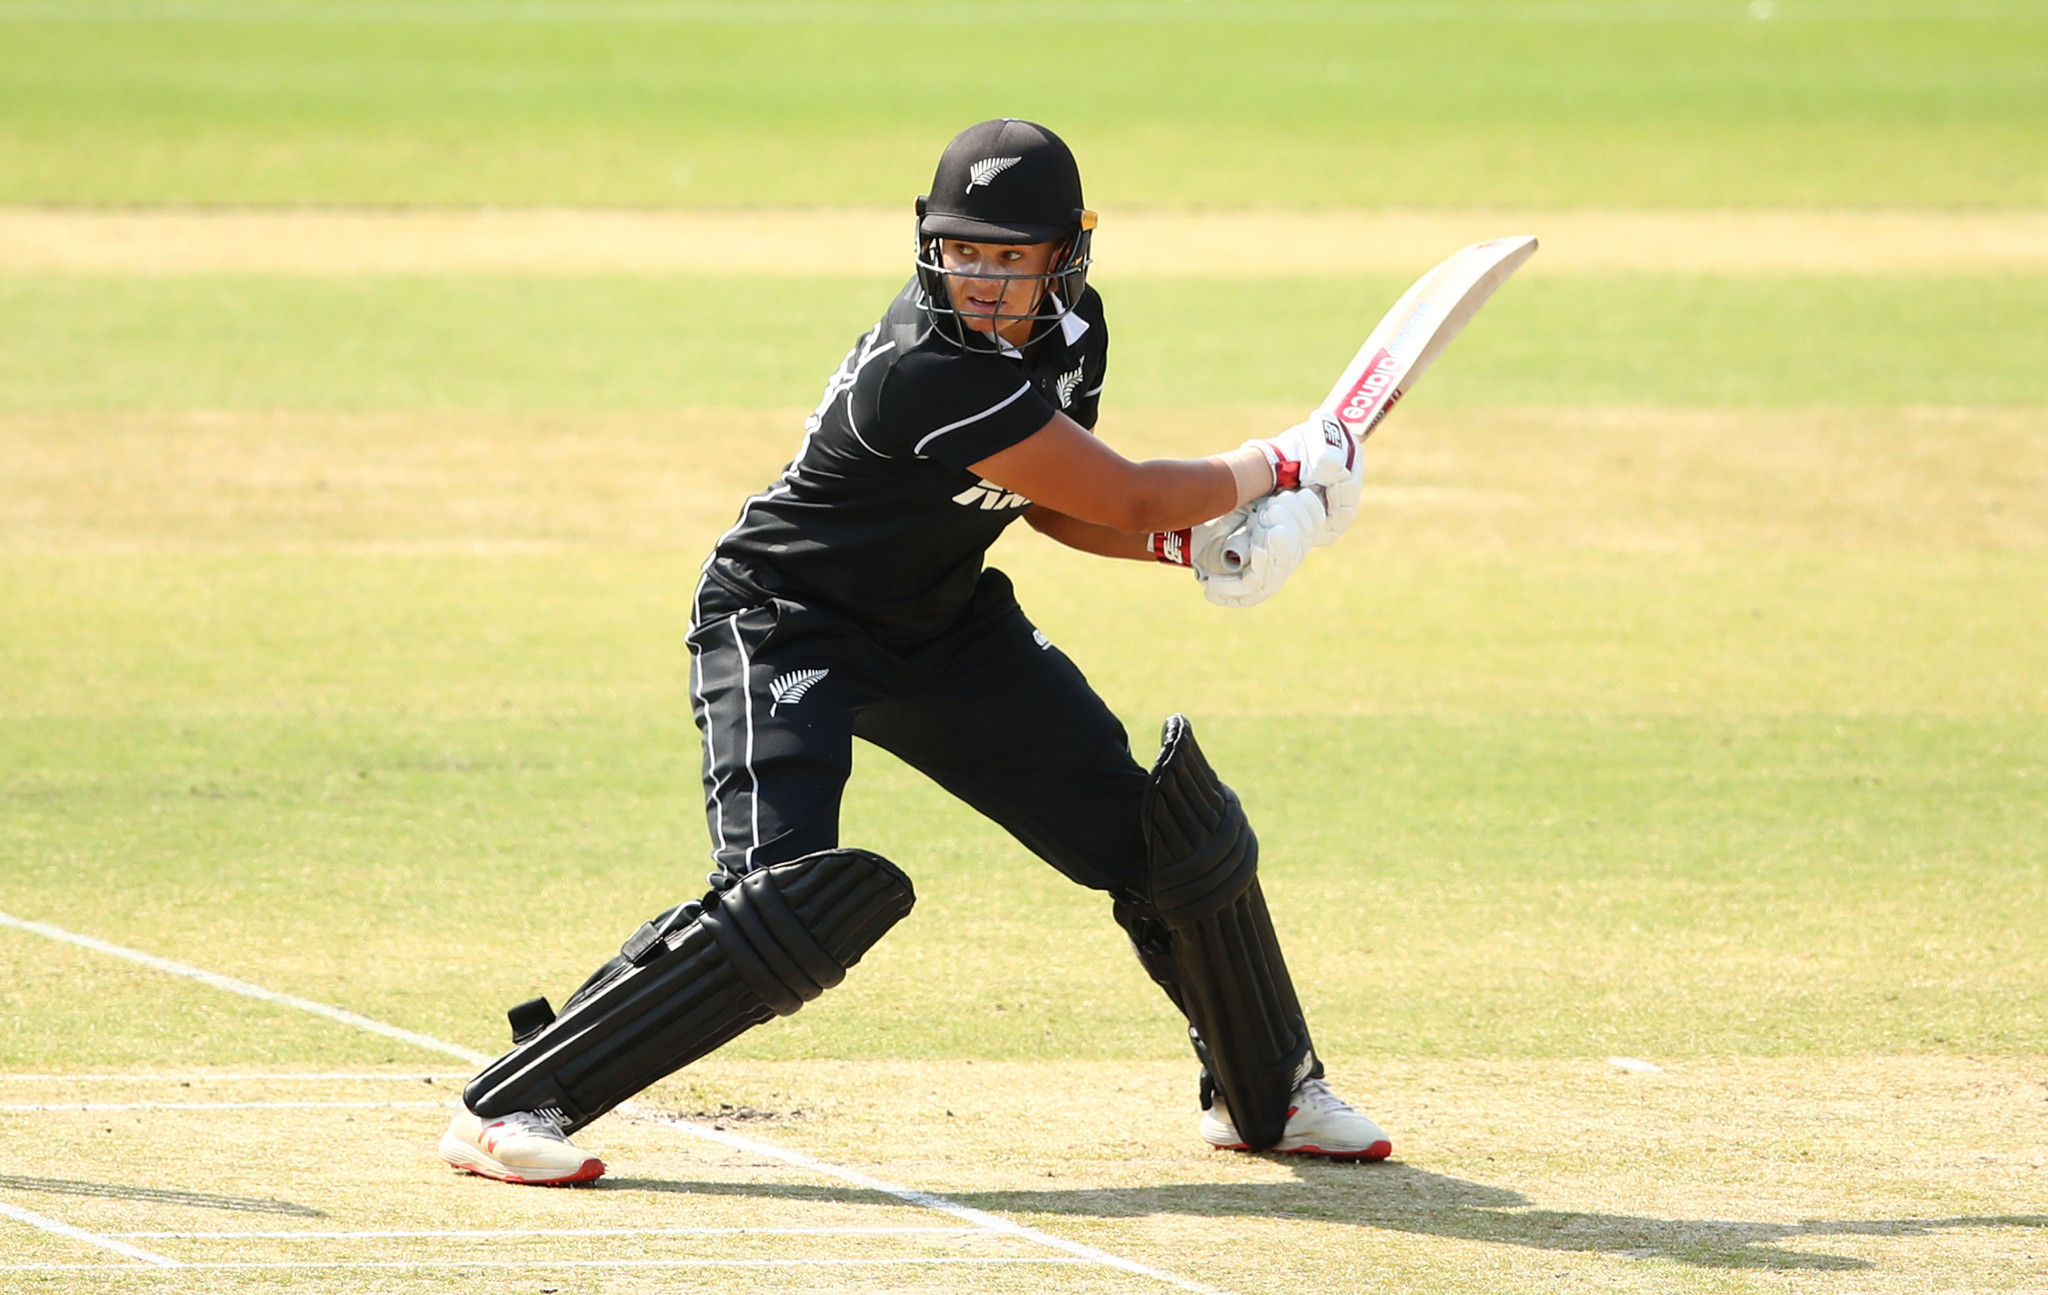 Former New Zealand women's captain Suzie Bates said the inclusion of women's cricket at Birmingham 2022 would be a game-changer ©Getty Images